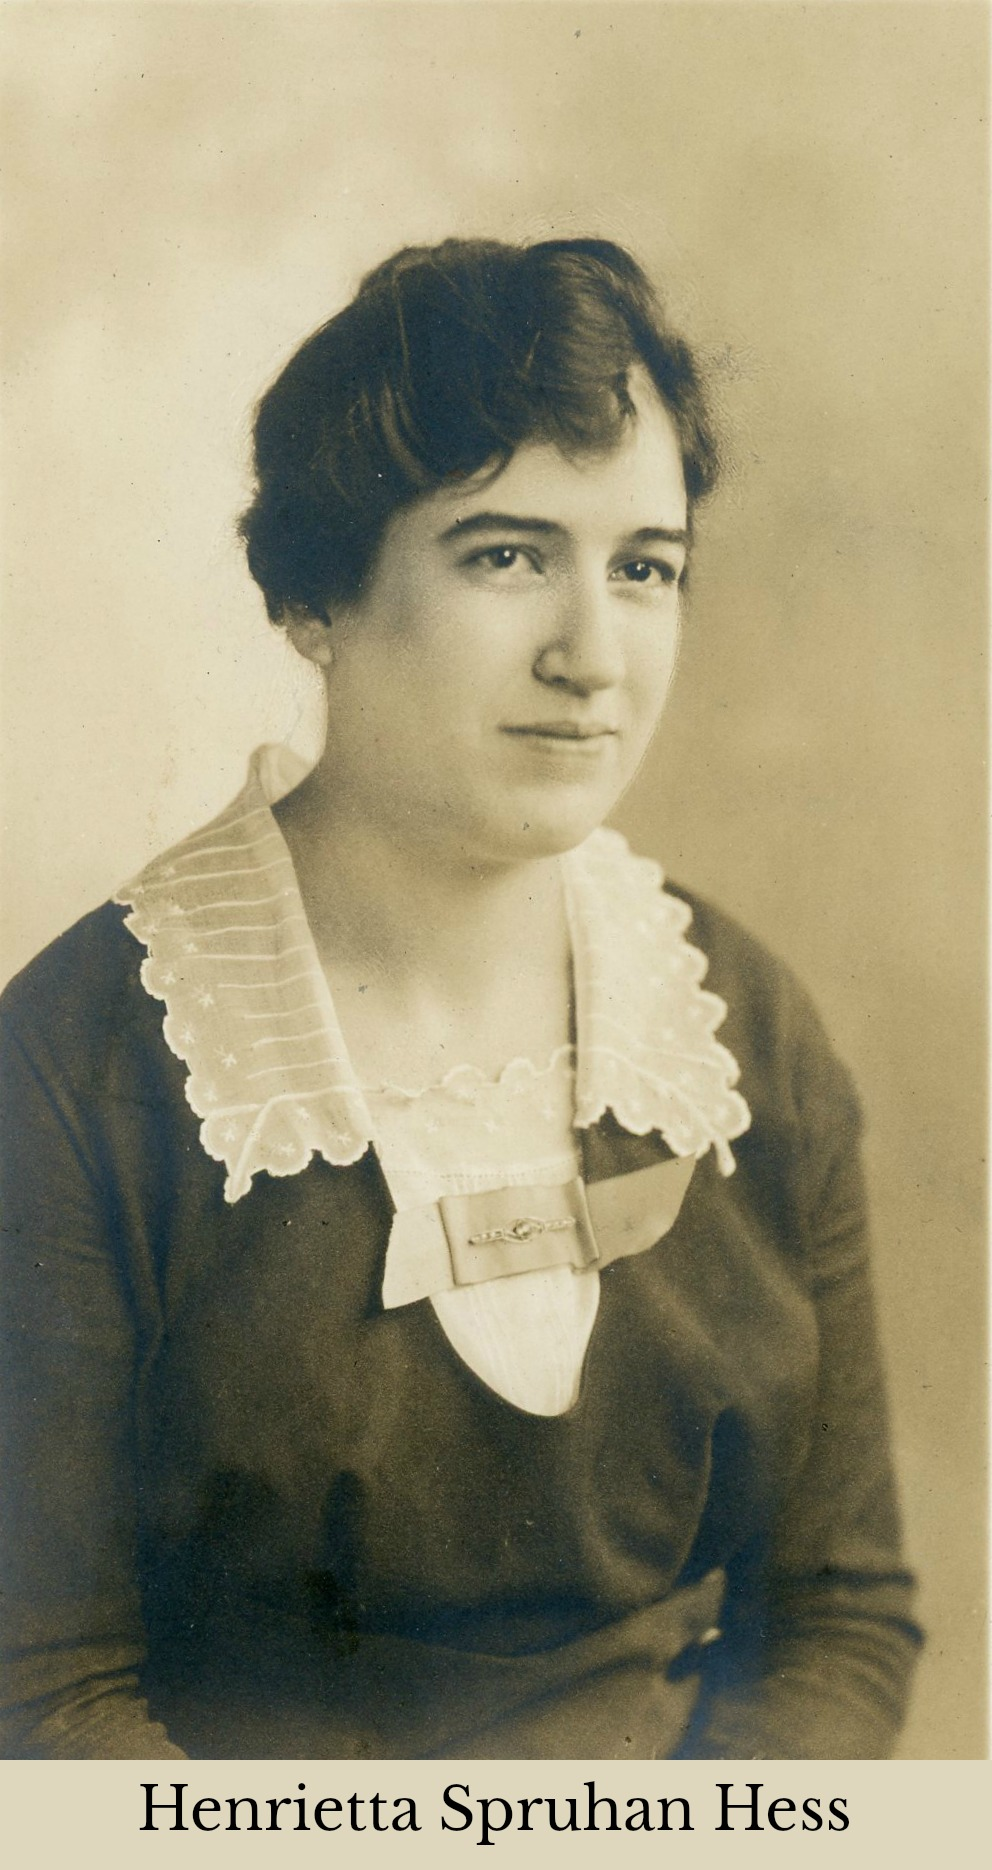 Henrietta Spruhan Hess portrait with lace collar